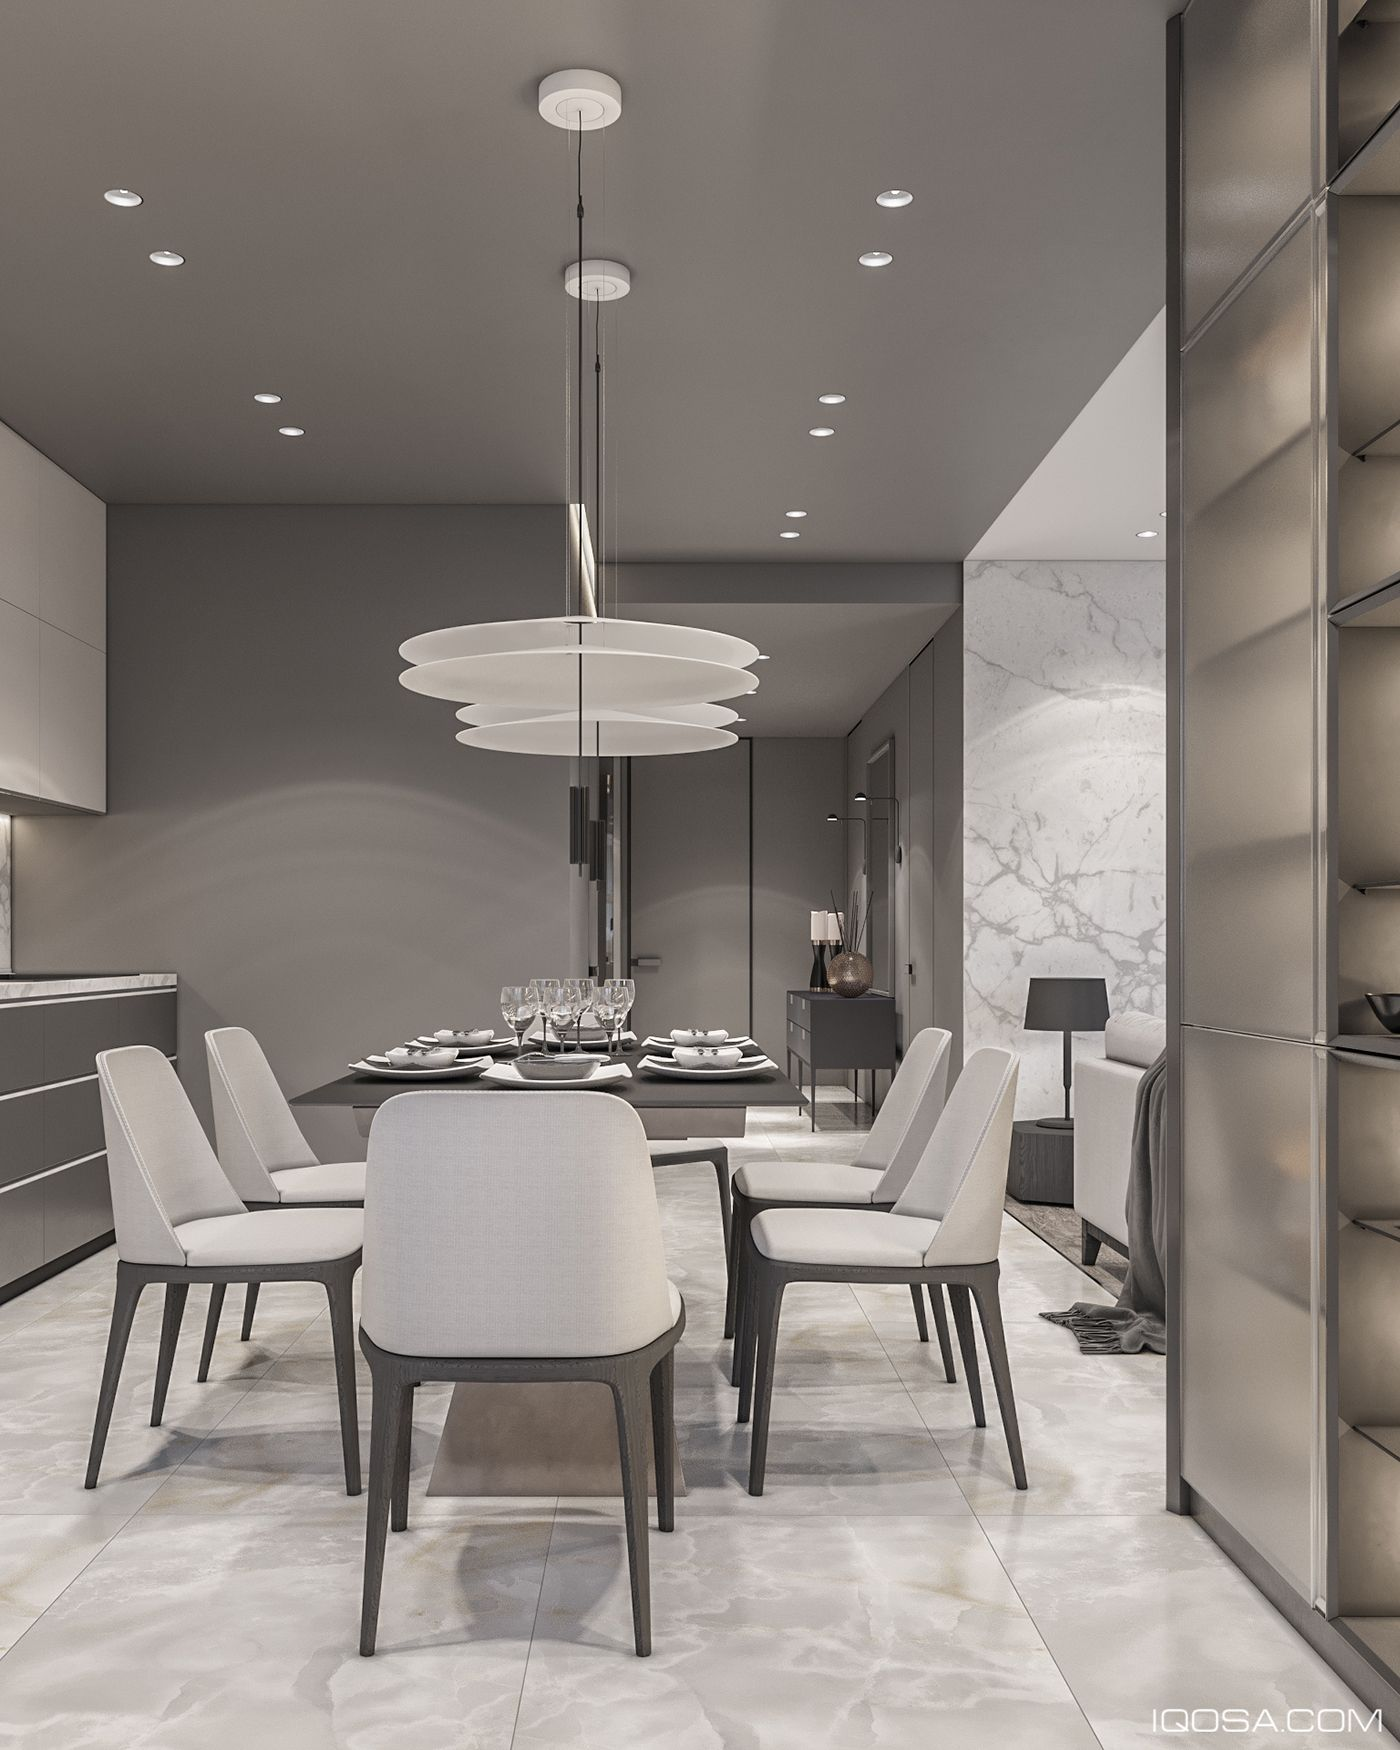 20 Dining Room And Kitchen Interior Combo Ideas 18307: Monochrome Apartment On Behance In 2019